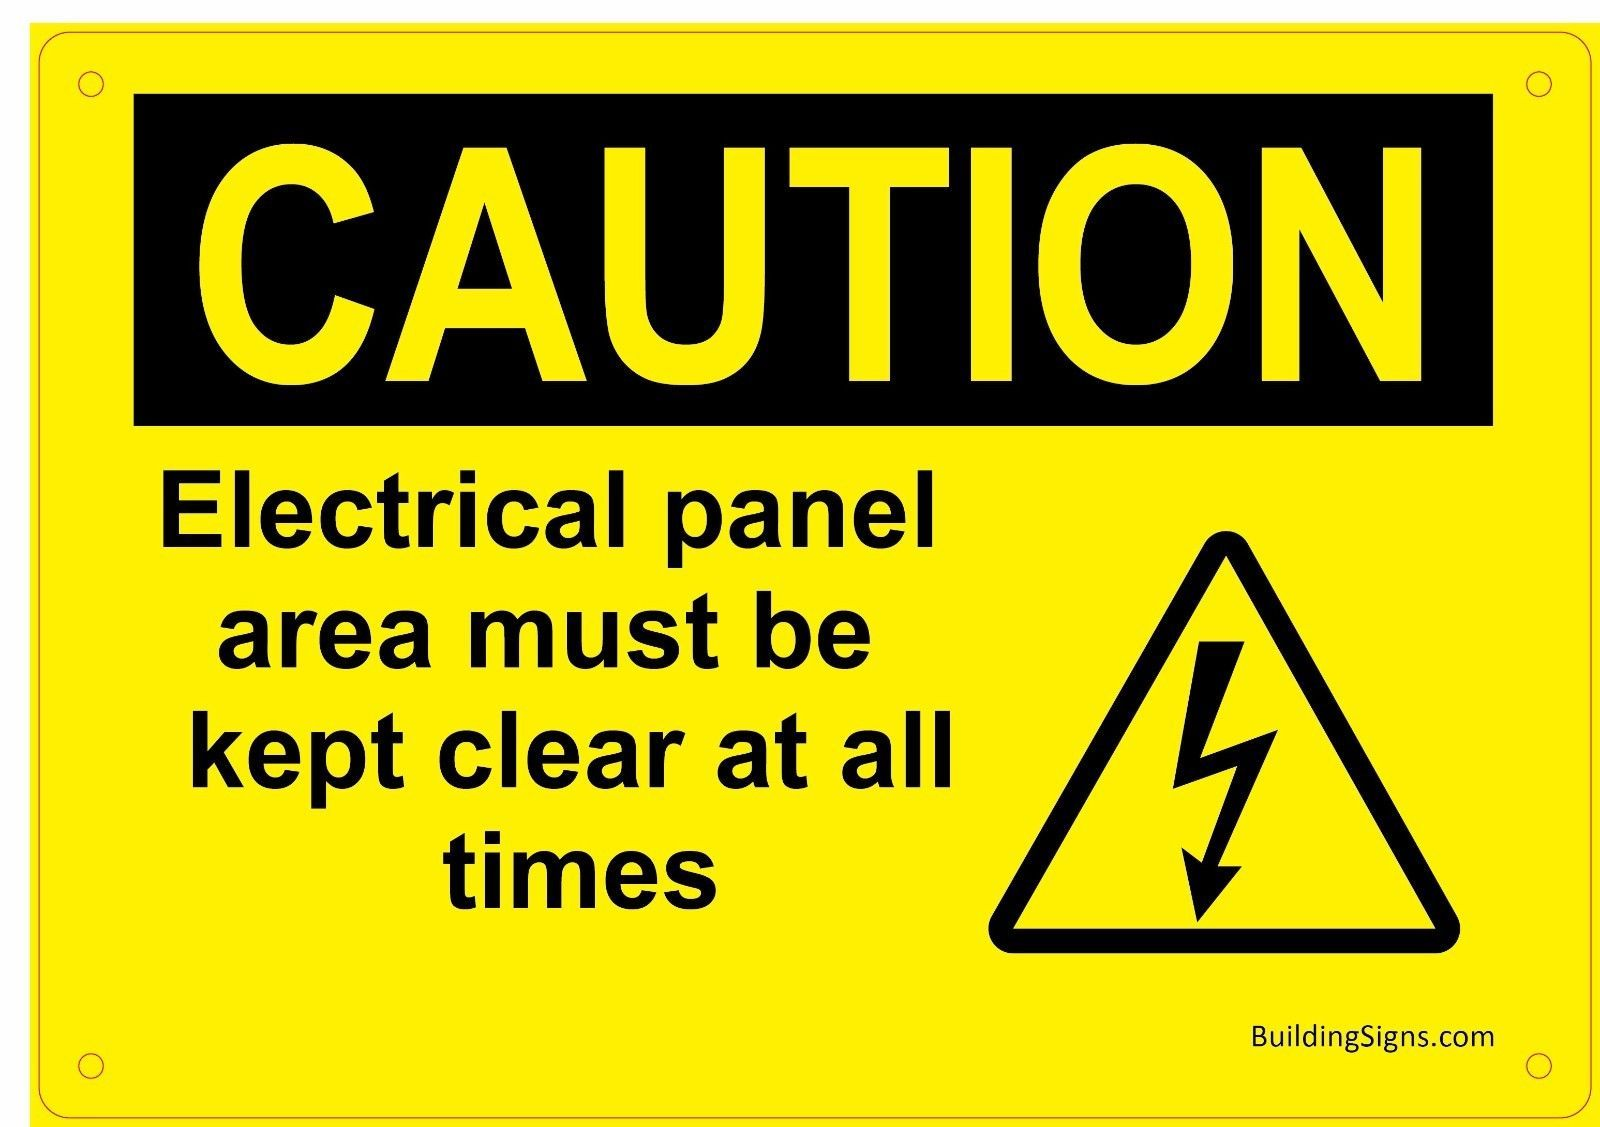 Details about Caution Electrical panel area must be kept